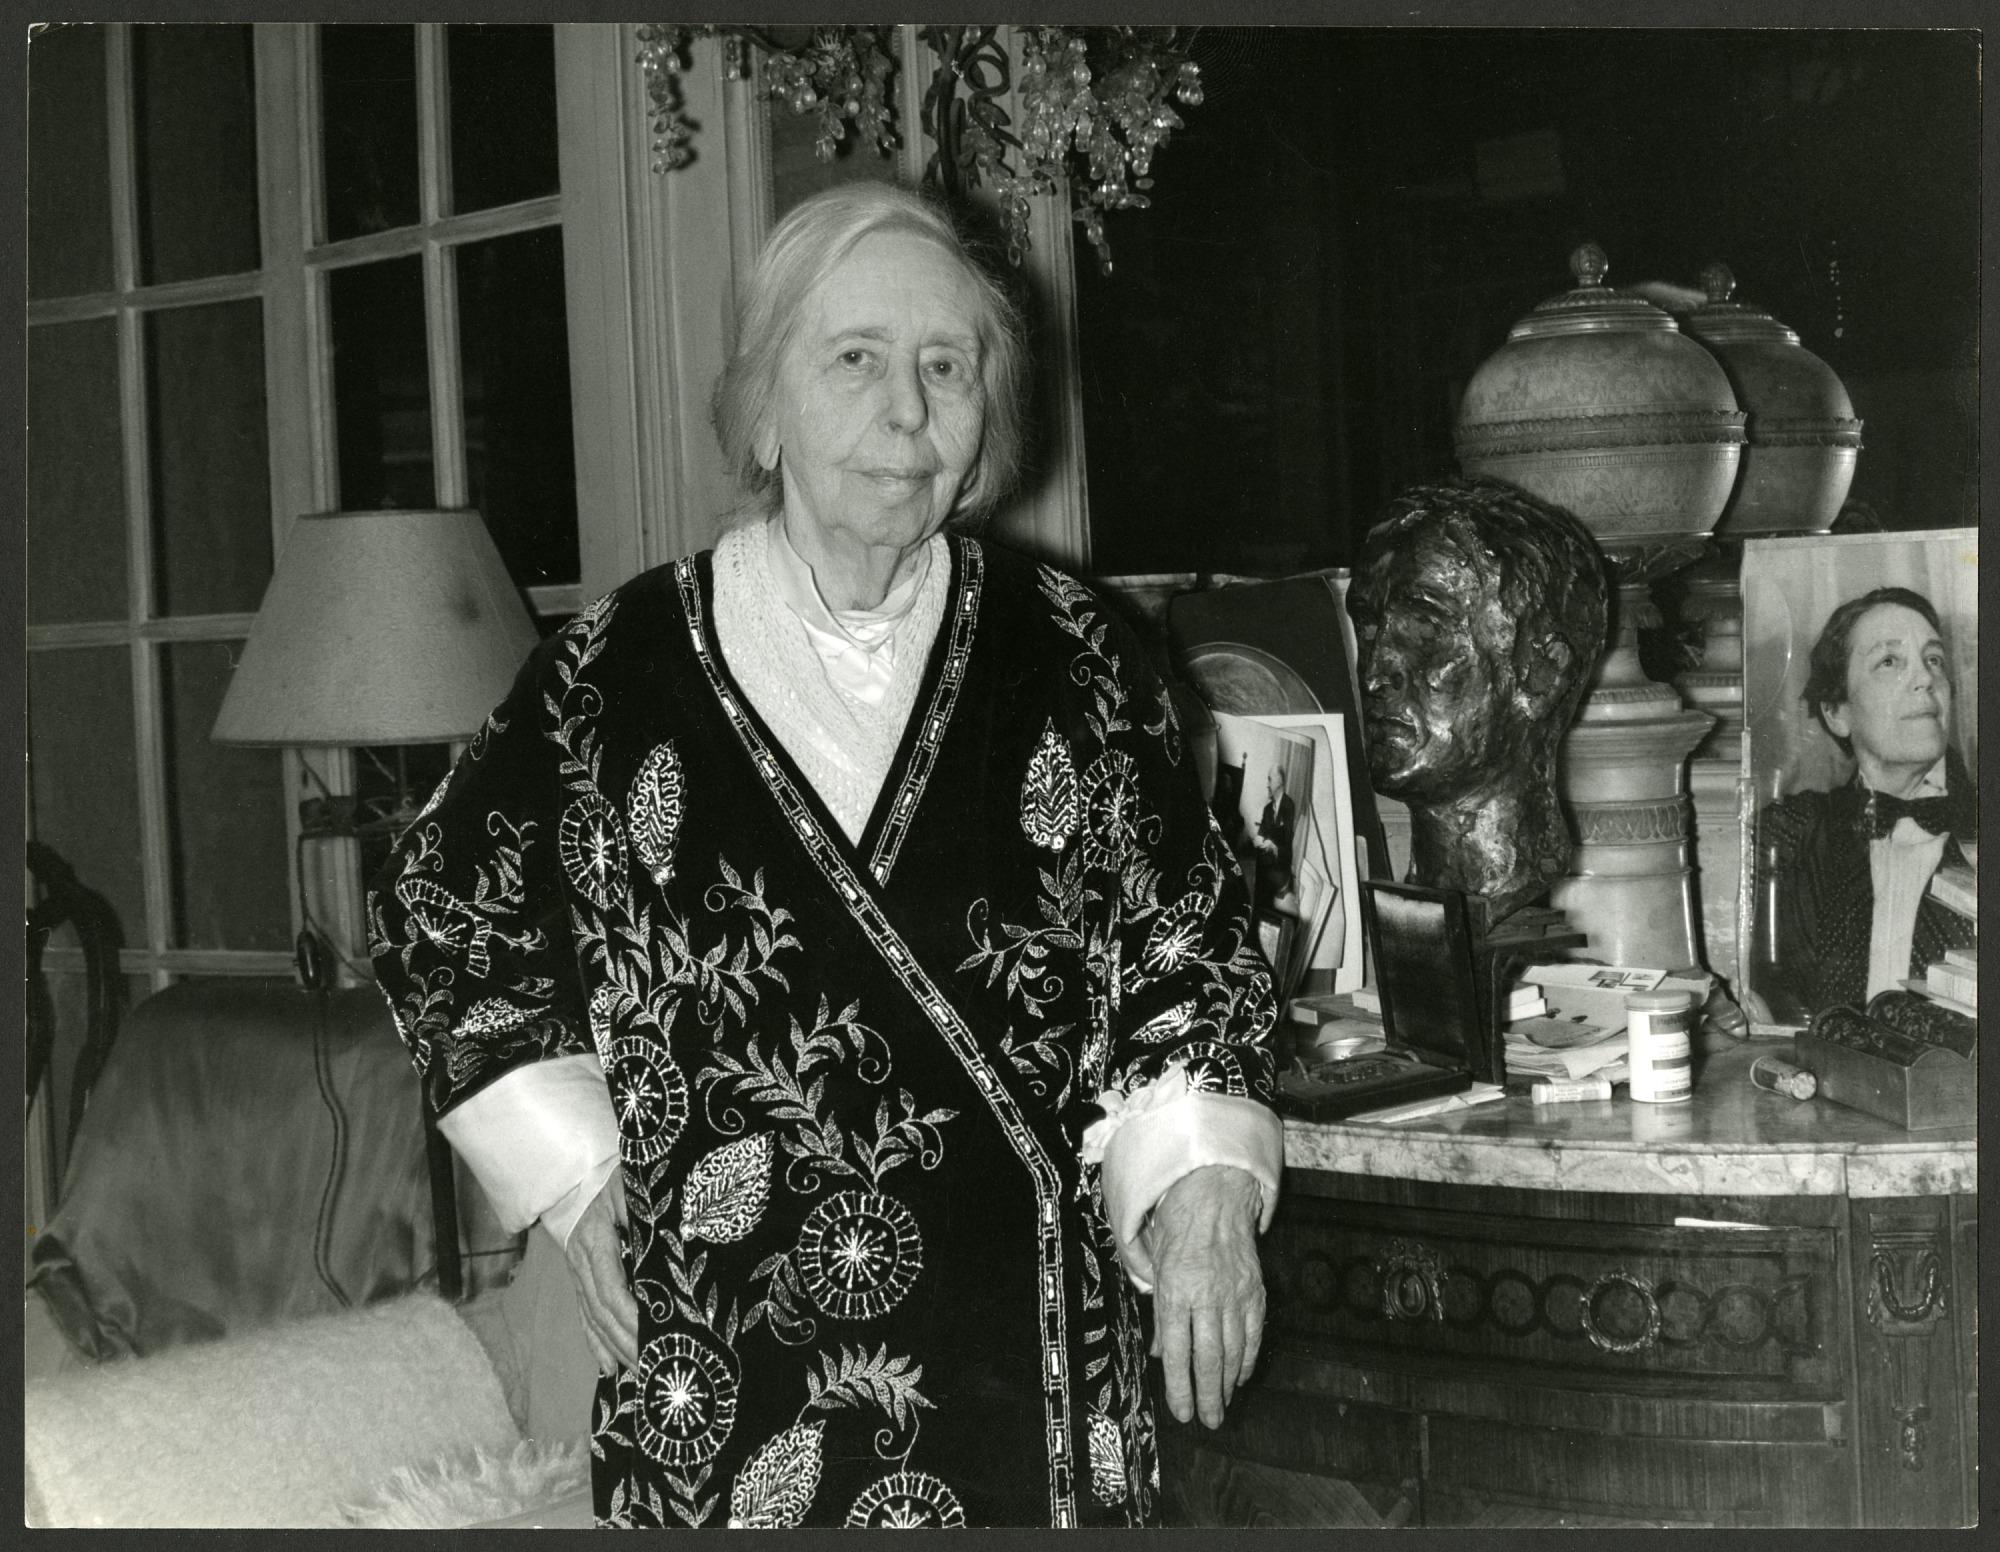 Natalie Clifford Barney, 1965, Smithsonian Institution Archives, SIA Acc. 96-153 [SIA2014-03838].